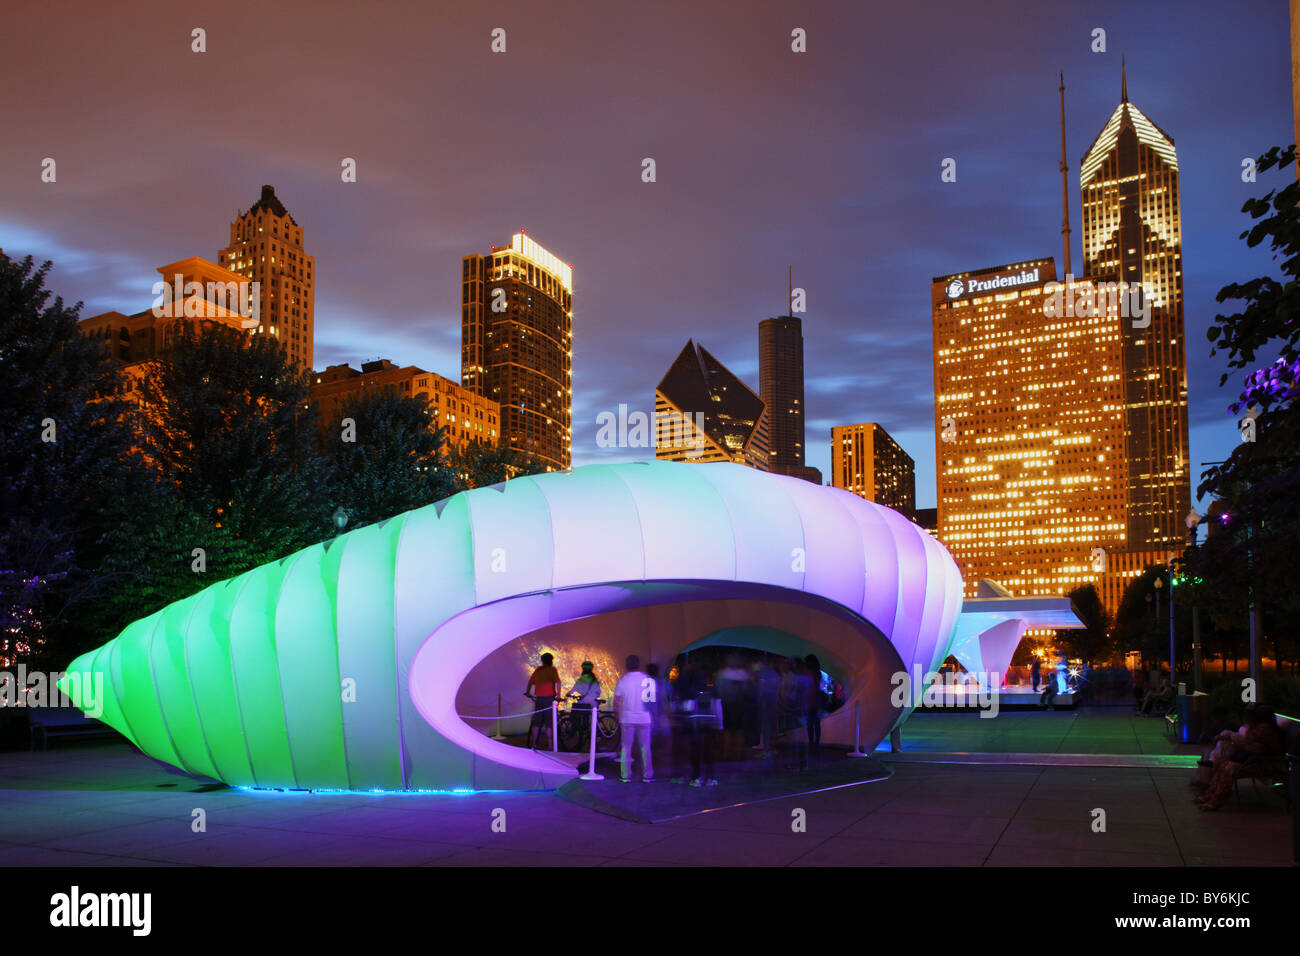 Millennium Park, Zaha Hadid Pavilion for the Burnham Centennial, Chicago, Illinois, USA Stock Photo